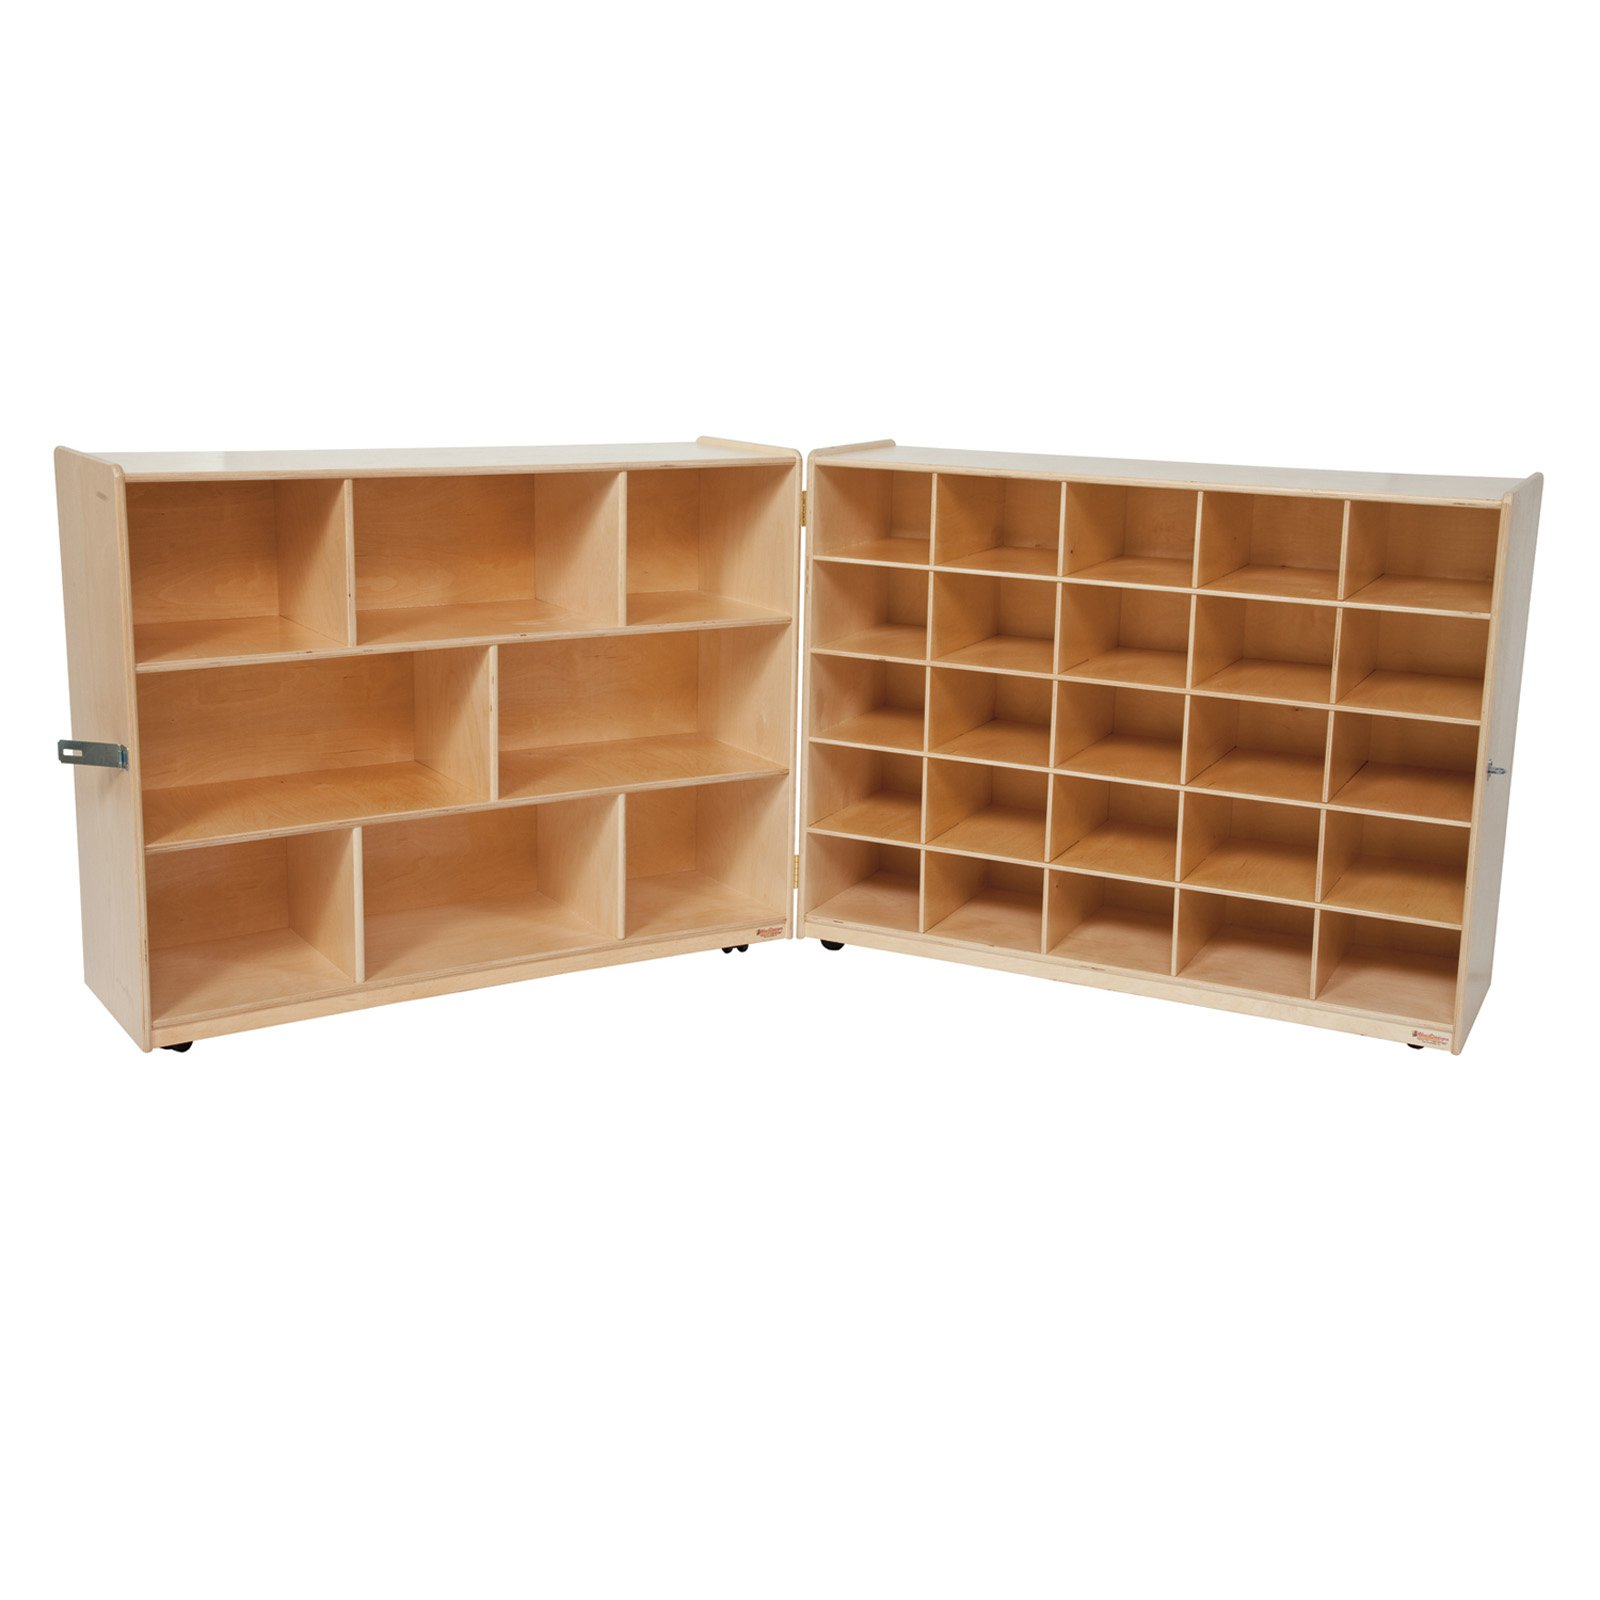 Wood Designs Natural Tray and Shelf Folding Storage without Trays